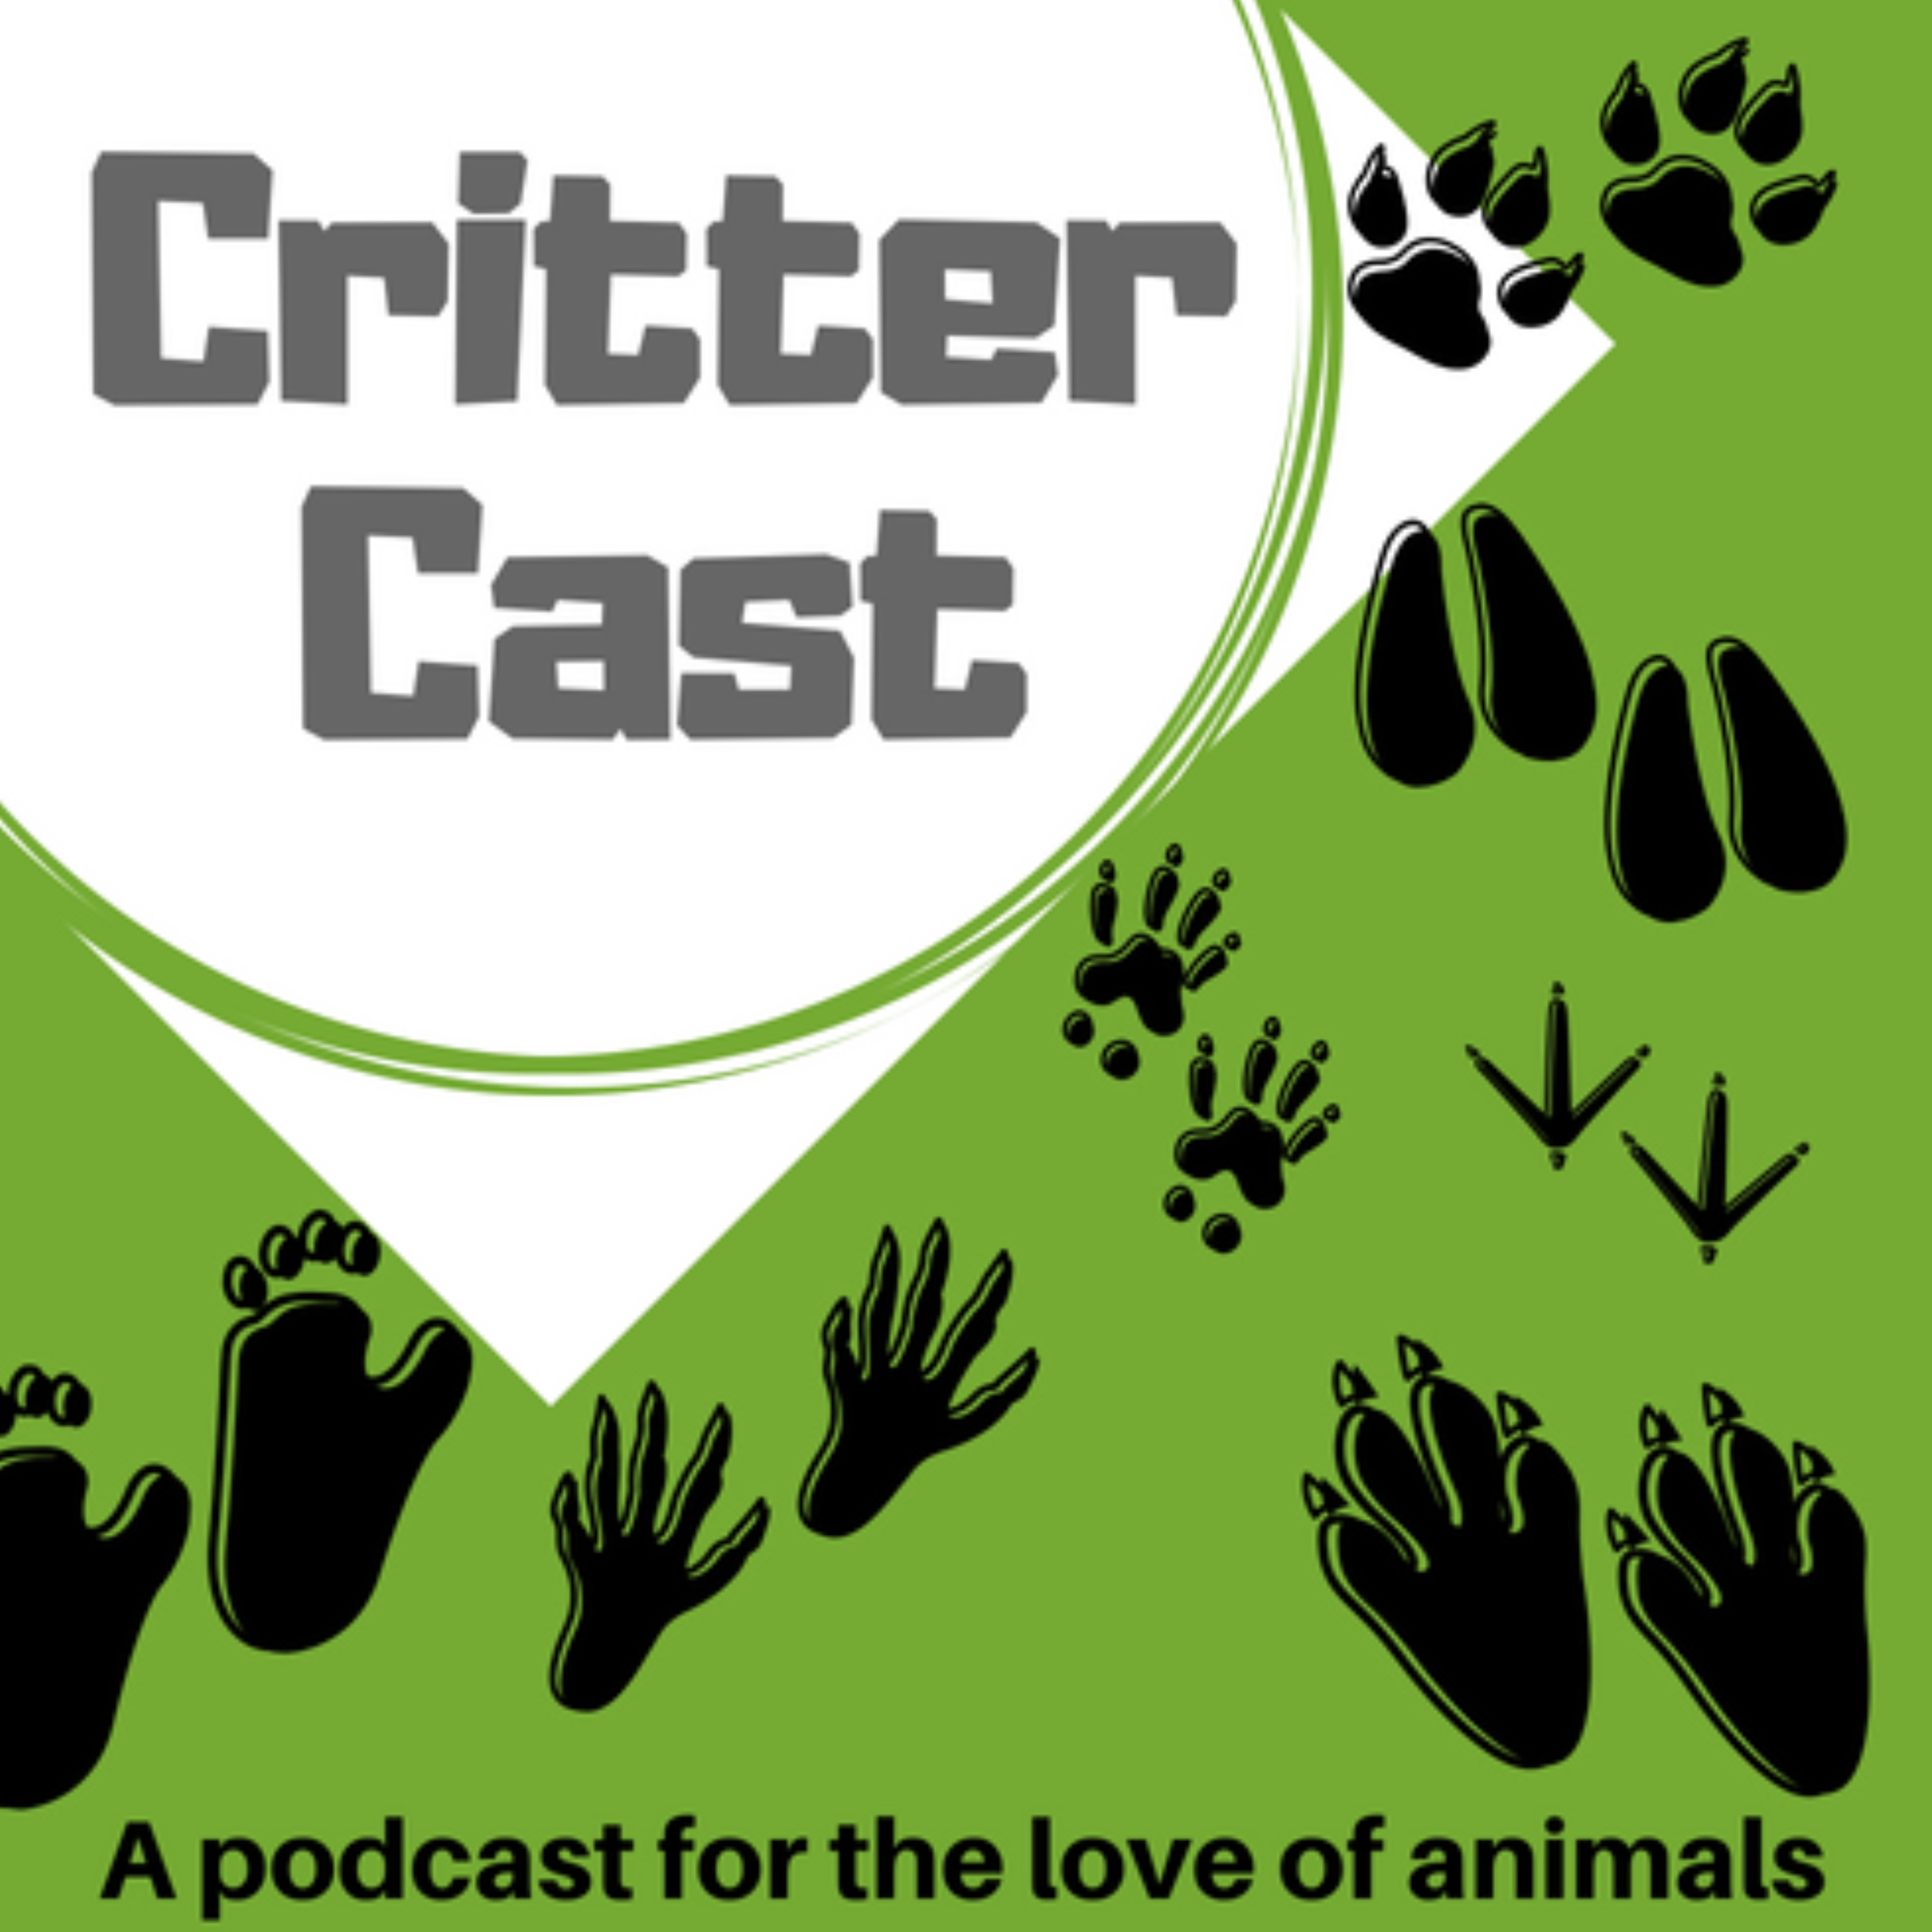 Episode 53: Meanwhile in the animal world